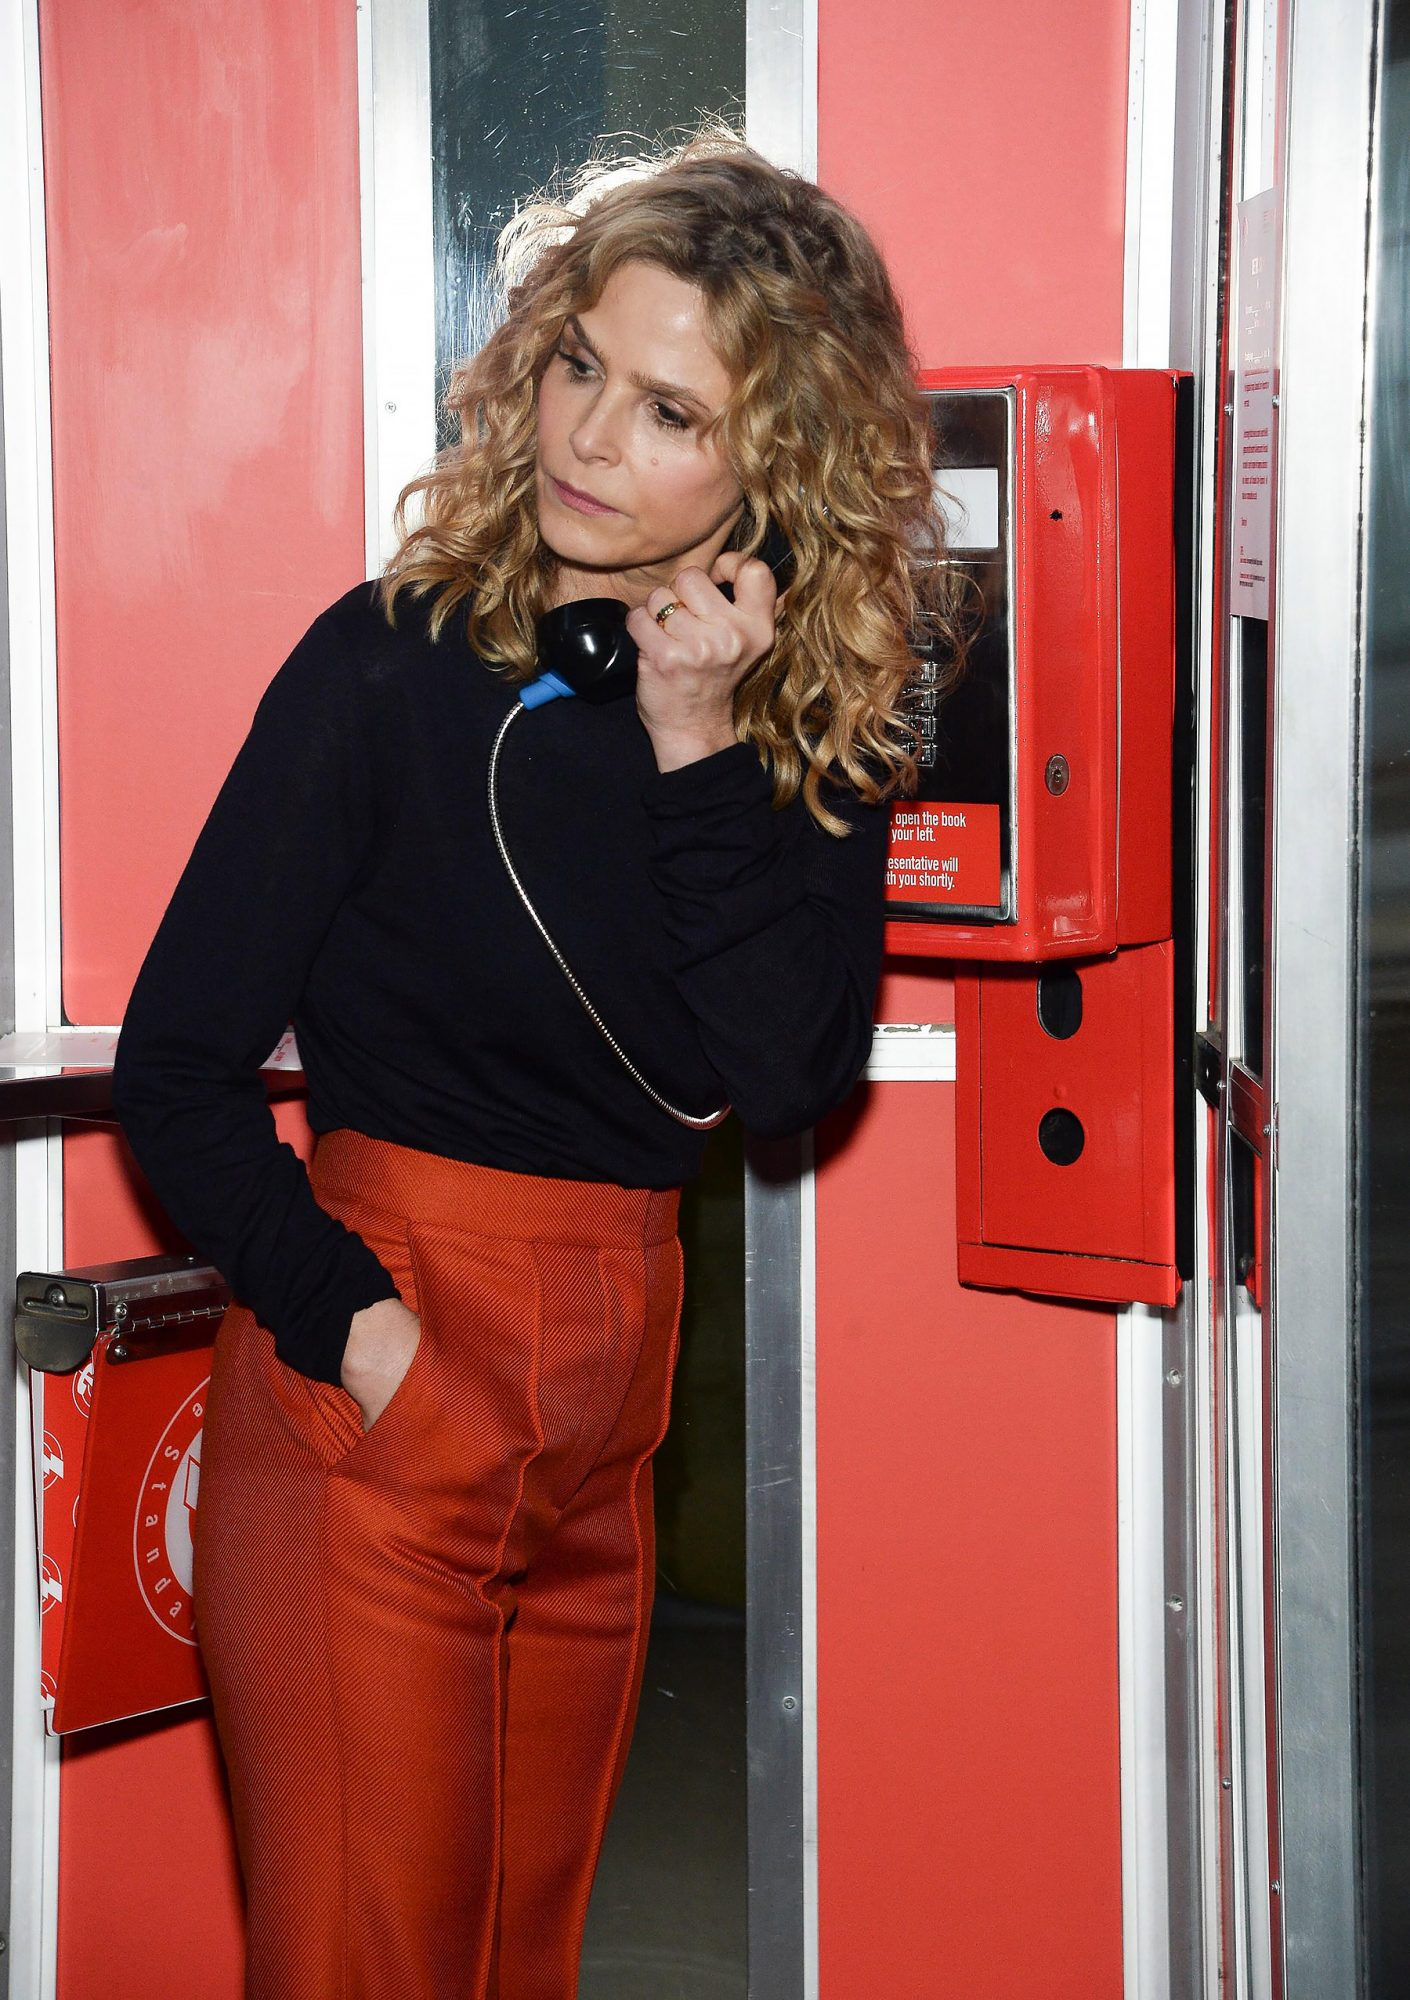 New York, NY, USA. 18th Oct, 2017. Kyra Sedgwick at the press conference for Everytown for Gun Safety Launch #RejectTheNRA Campaign, The Standard, High Line, New York, NY October 18, 2017. Credit: Eli Winston/Everett Collection/Alamy Live News